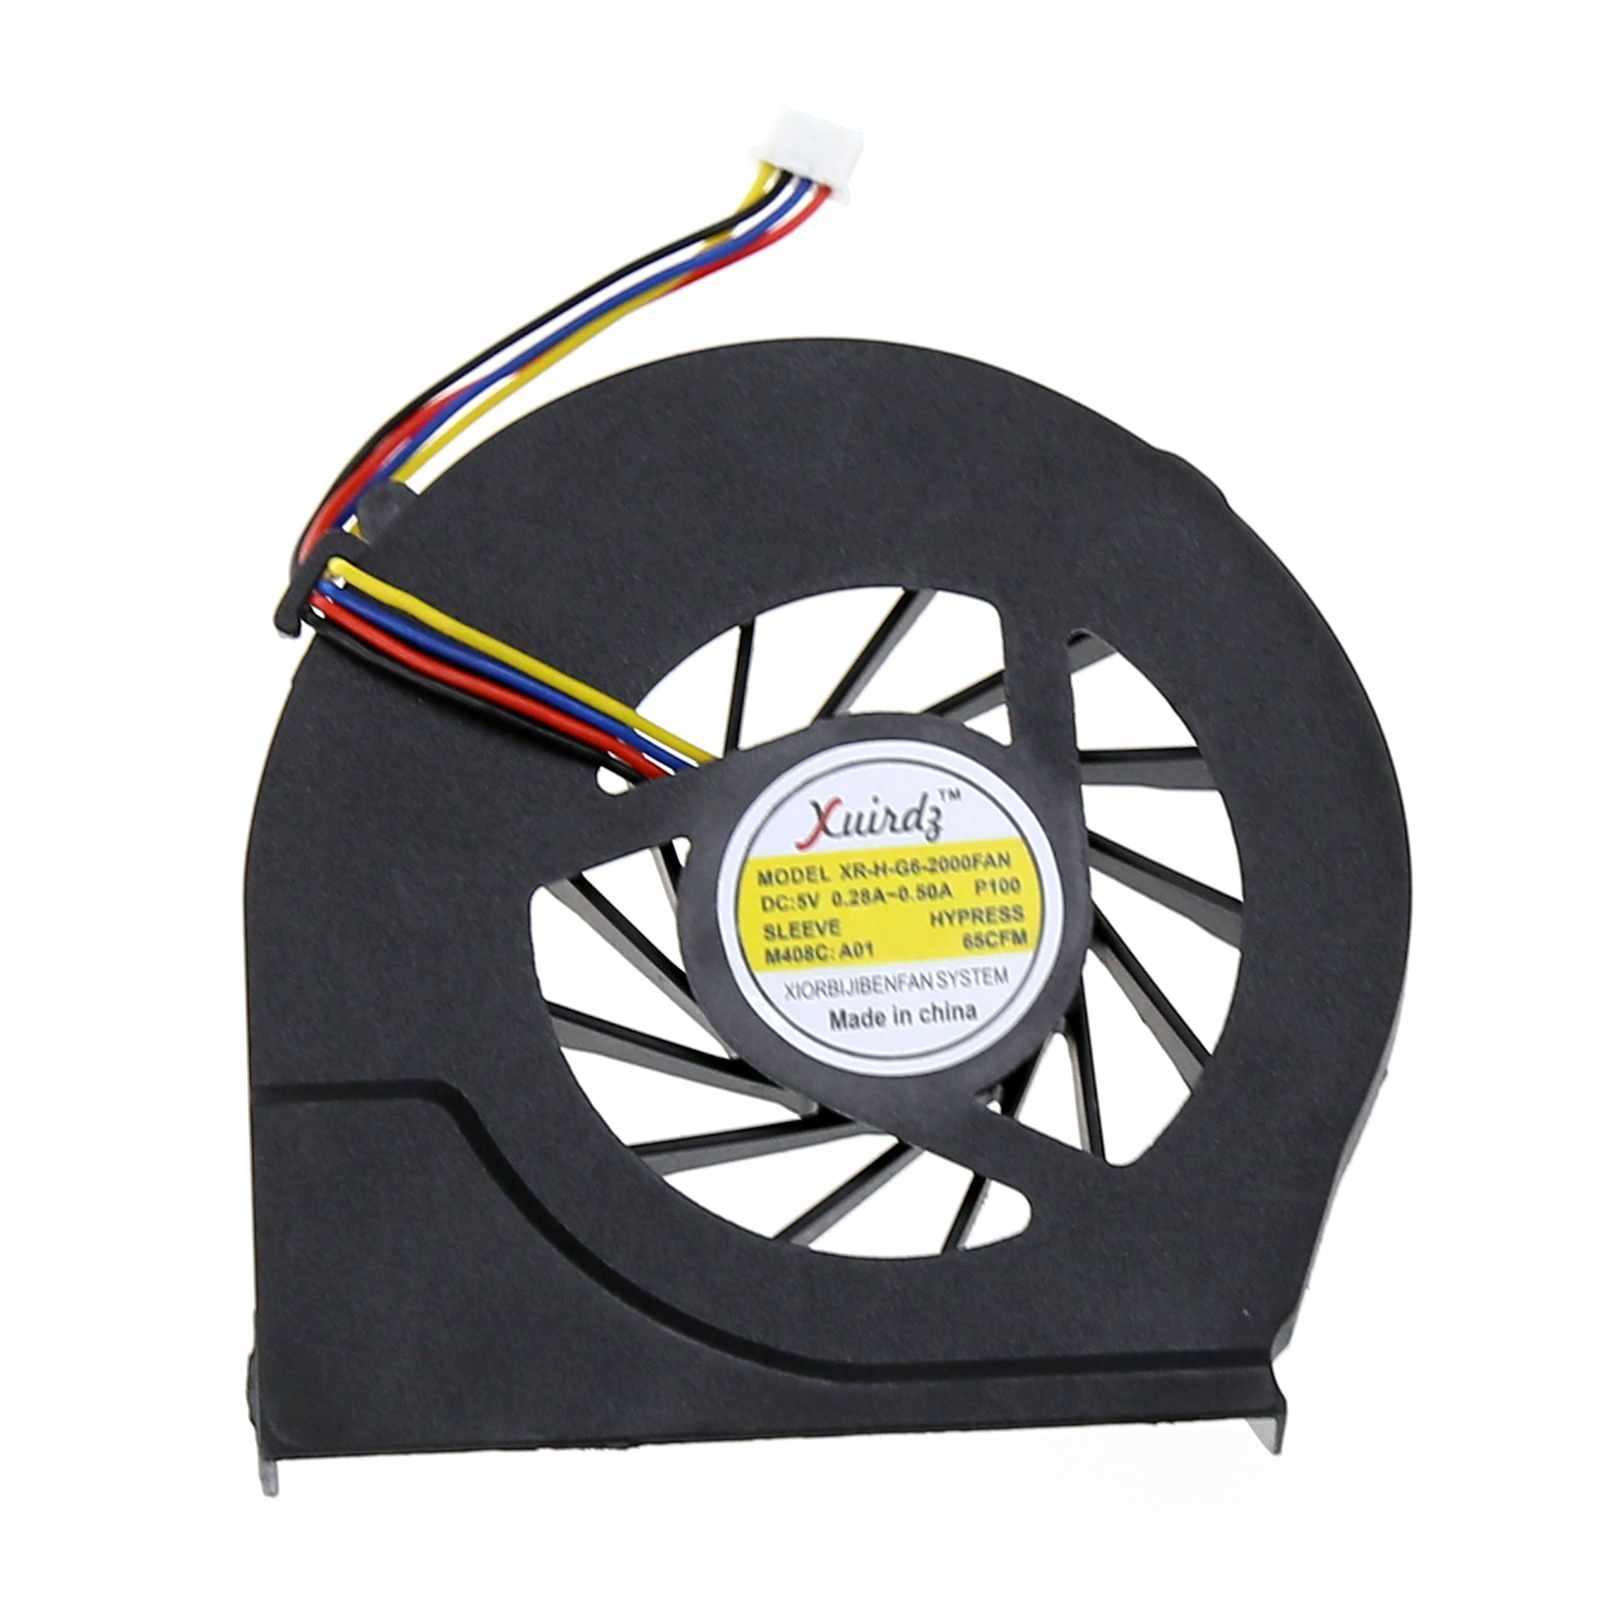 все цены на 100% Brand New and High Quality CPU cooler fan for  HP G4-2000, G6-2000, G7-2000  replacement cooling fan  for your PC онлайн